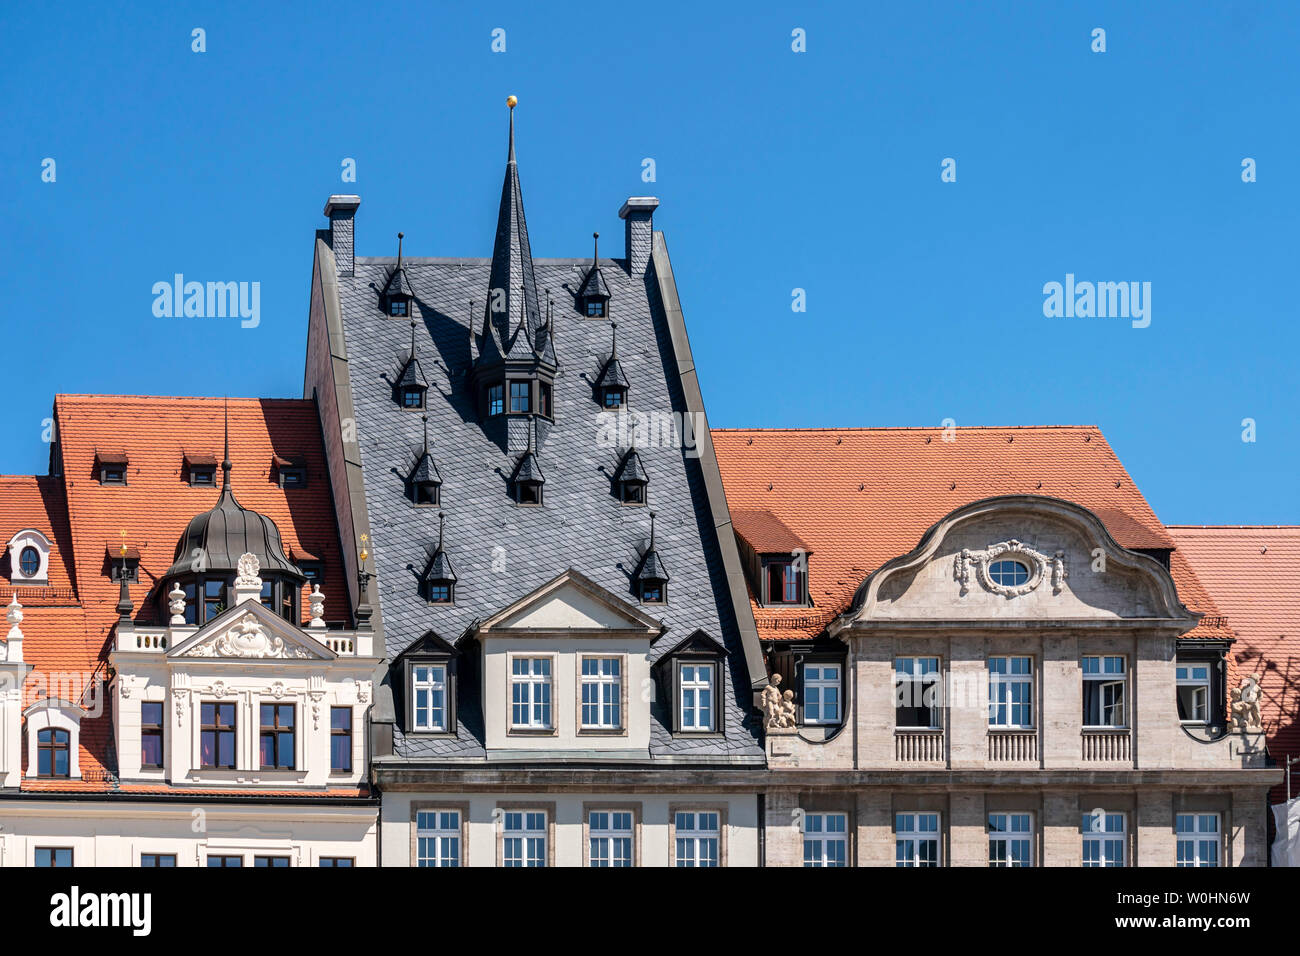 Historische Gebaeude am Marktplatz in Leipzig, Sachsen | historical buildings at market place in old city center of Leipzig, Saxony - Stock Image